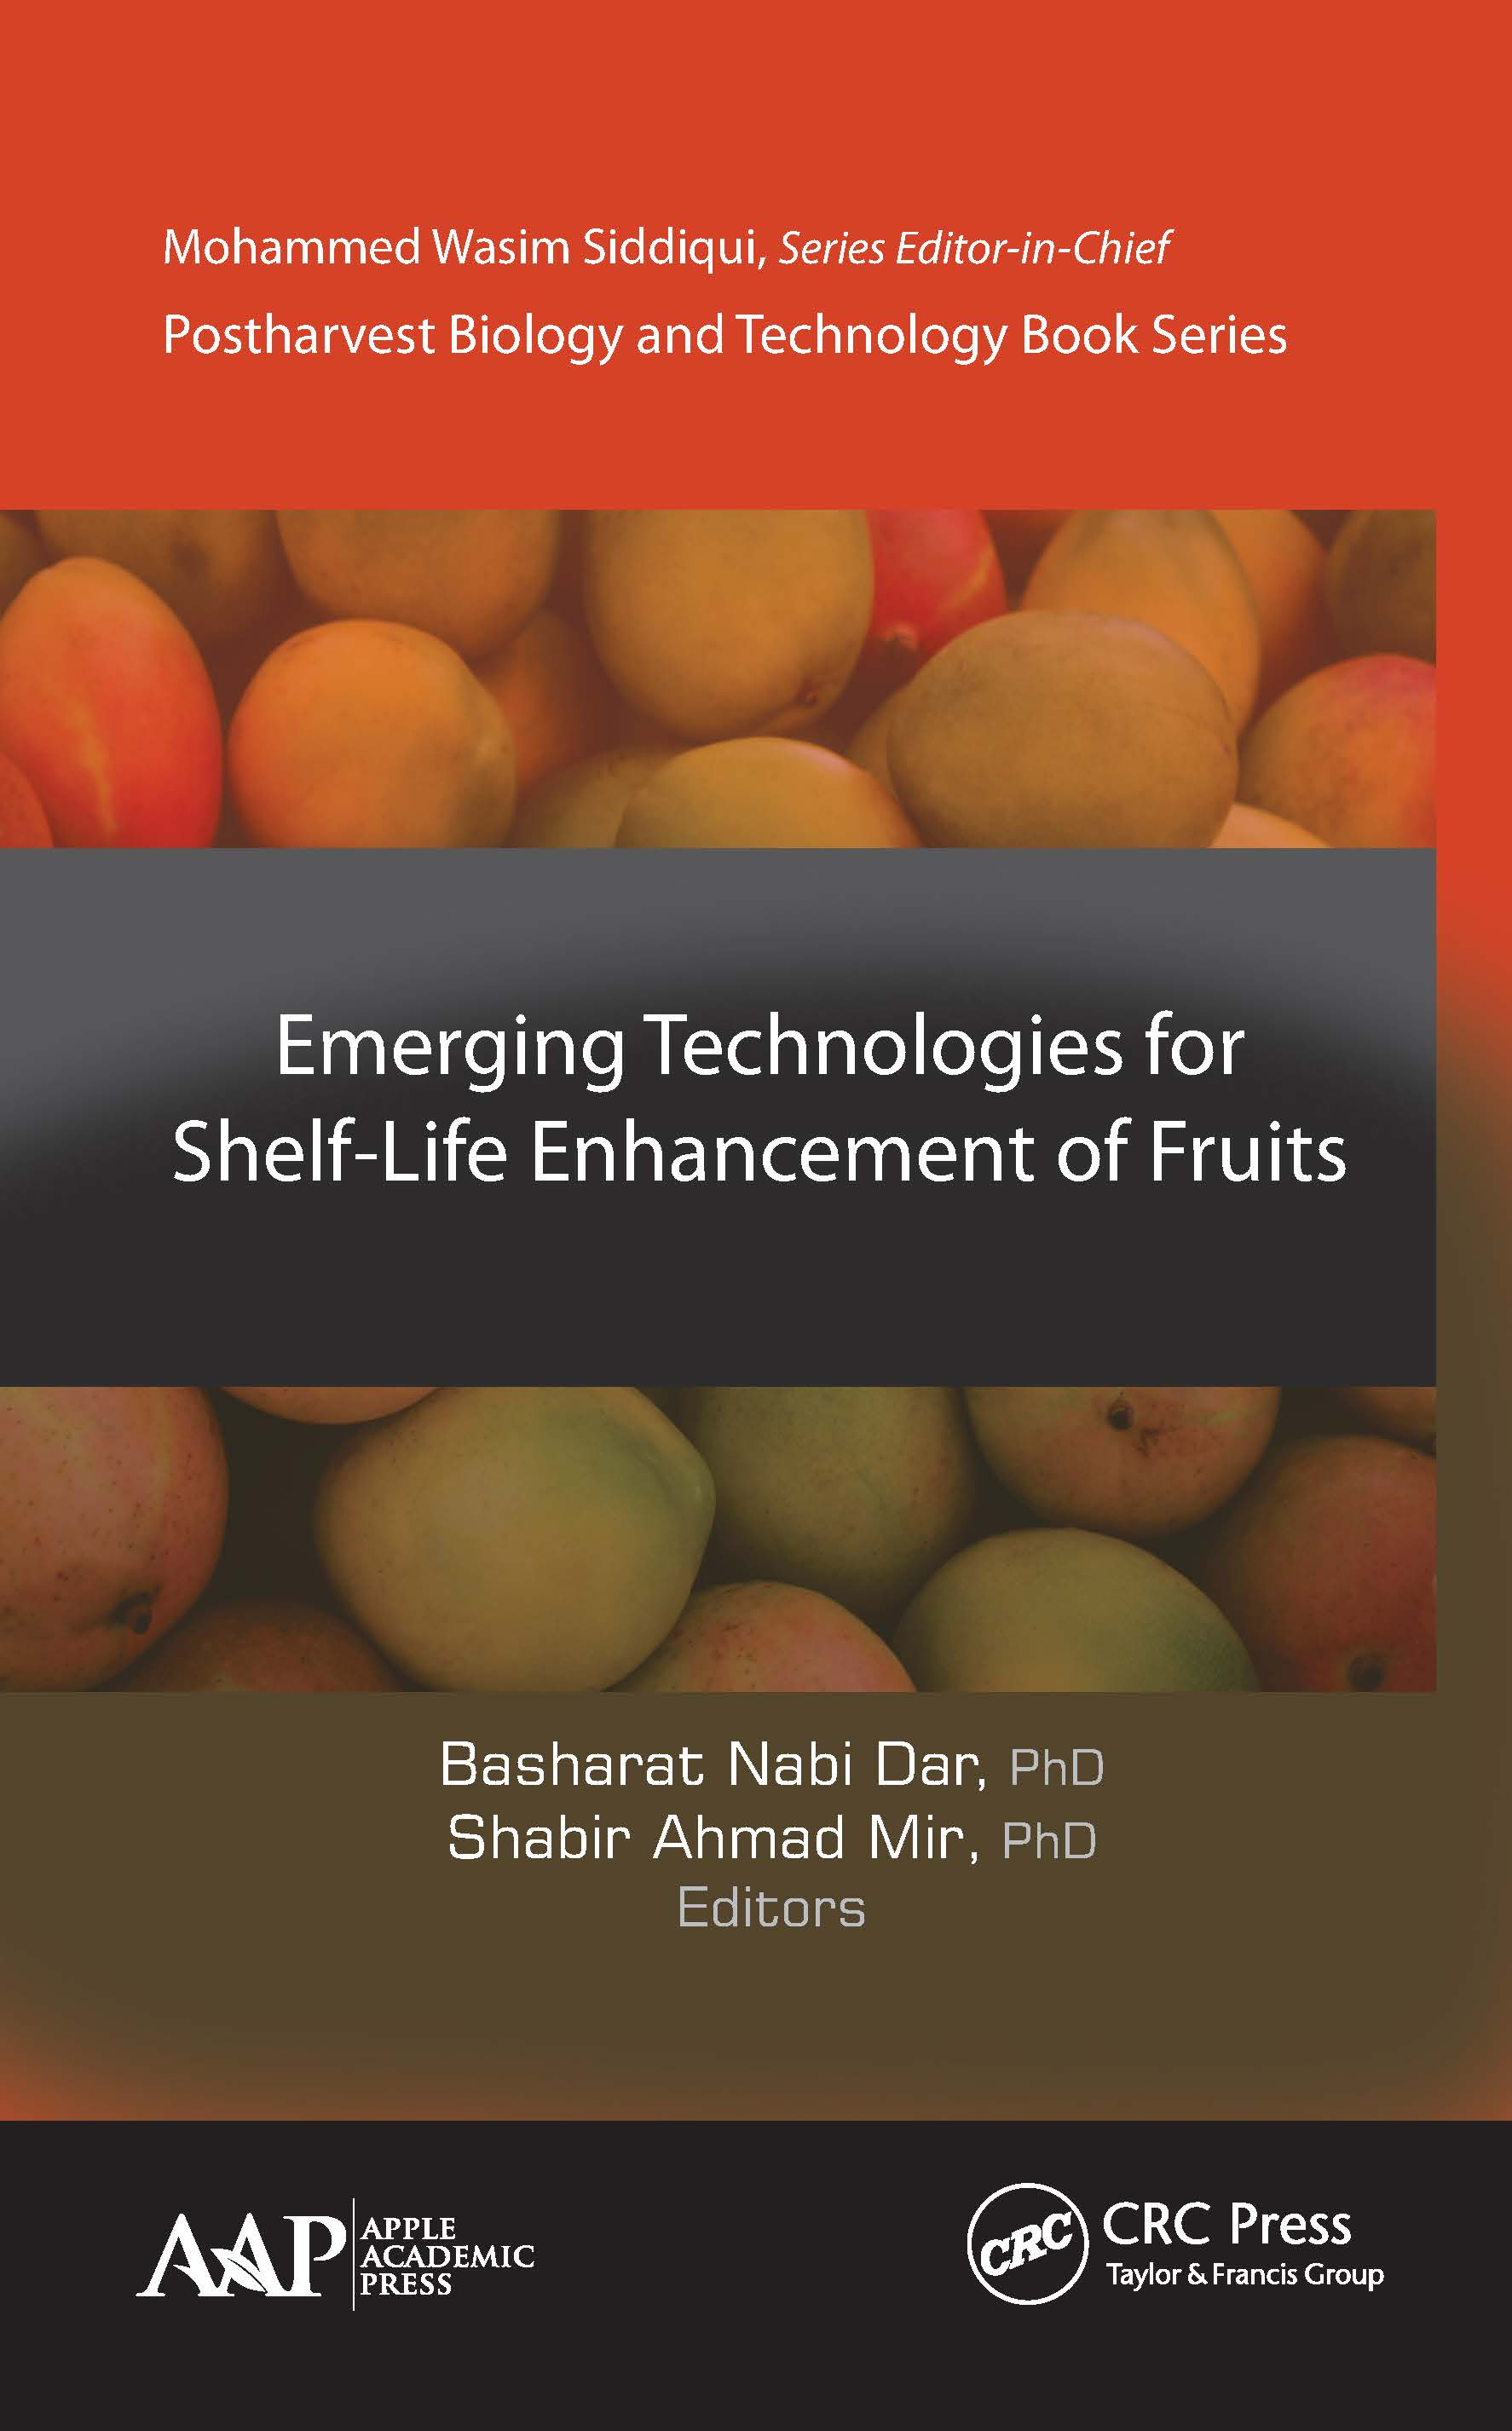 Emerging Technologies for Shelf-Life Enhancement of Fruits book cover